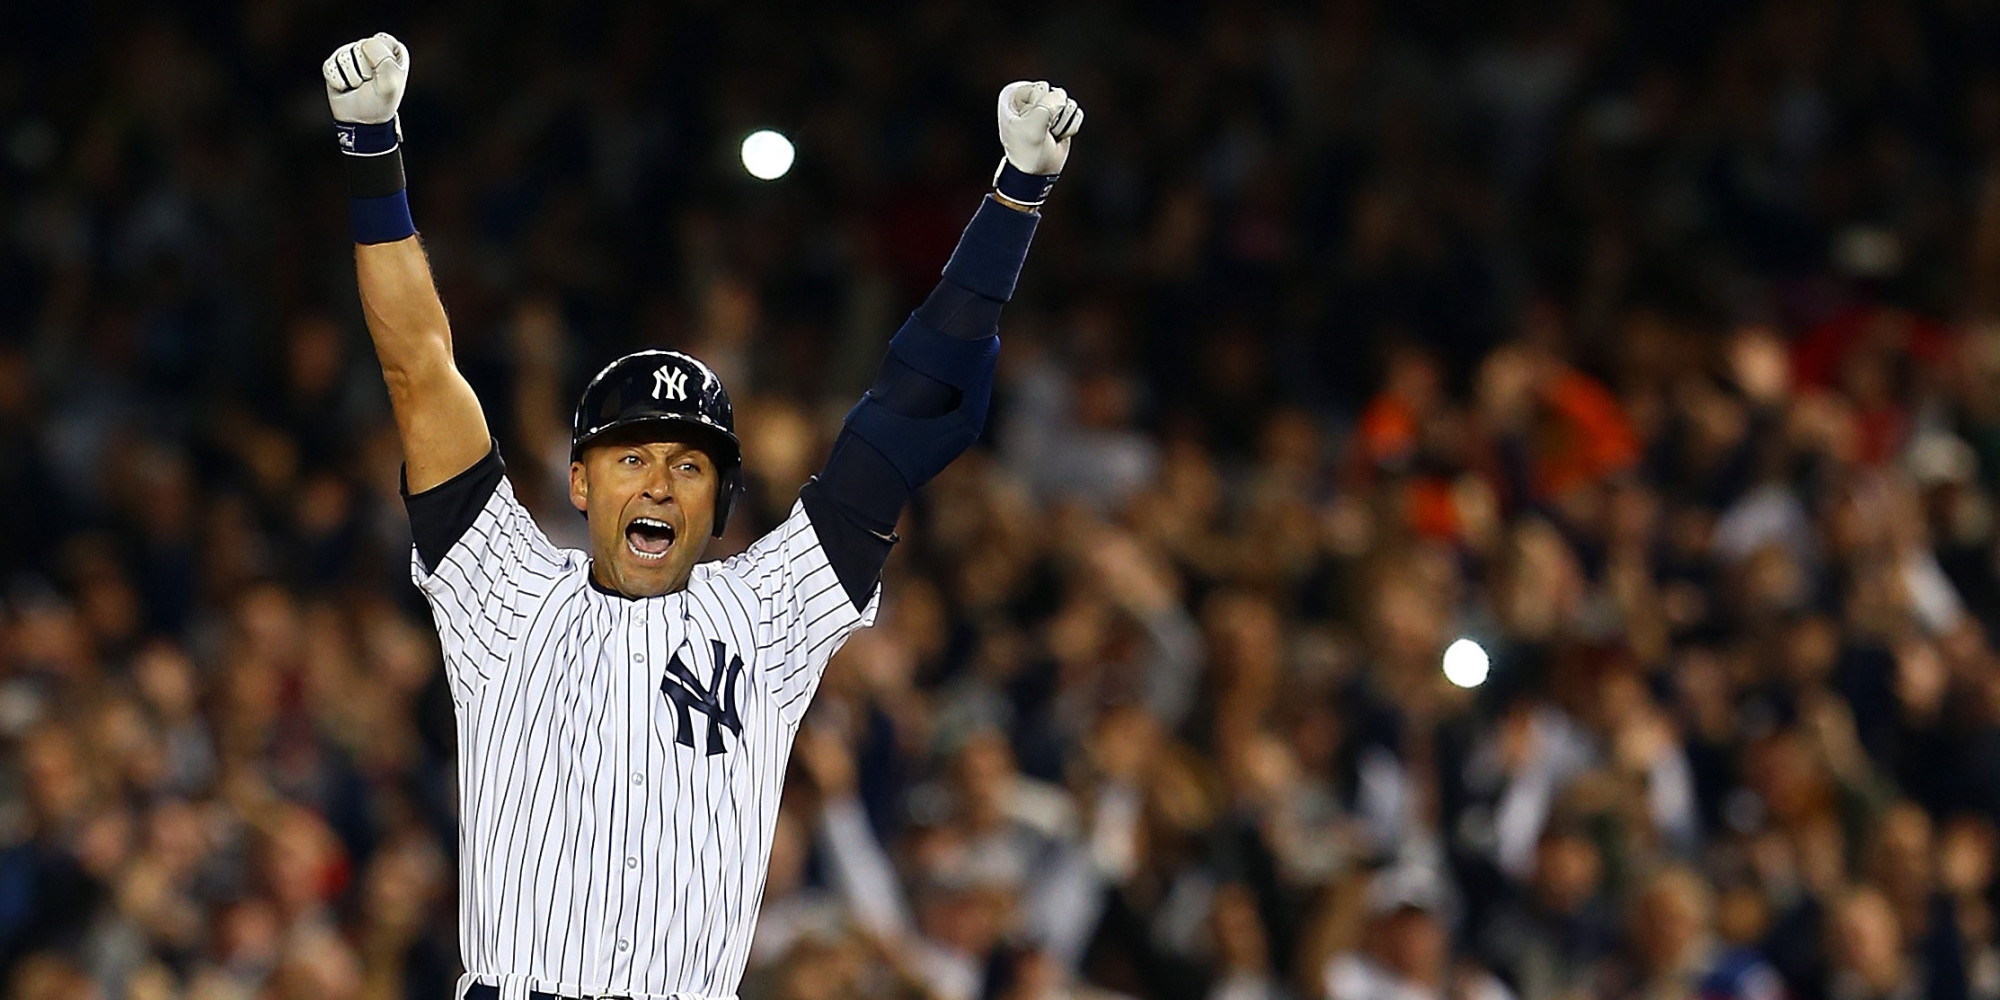 derek jeter shows once again that he knows how to seize